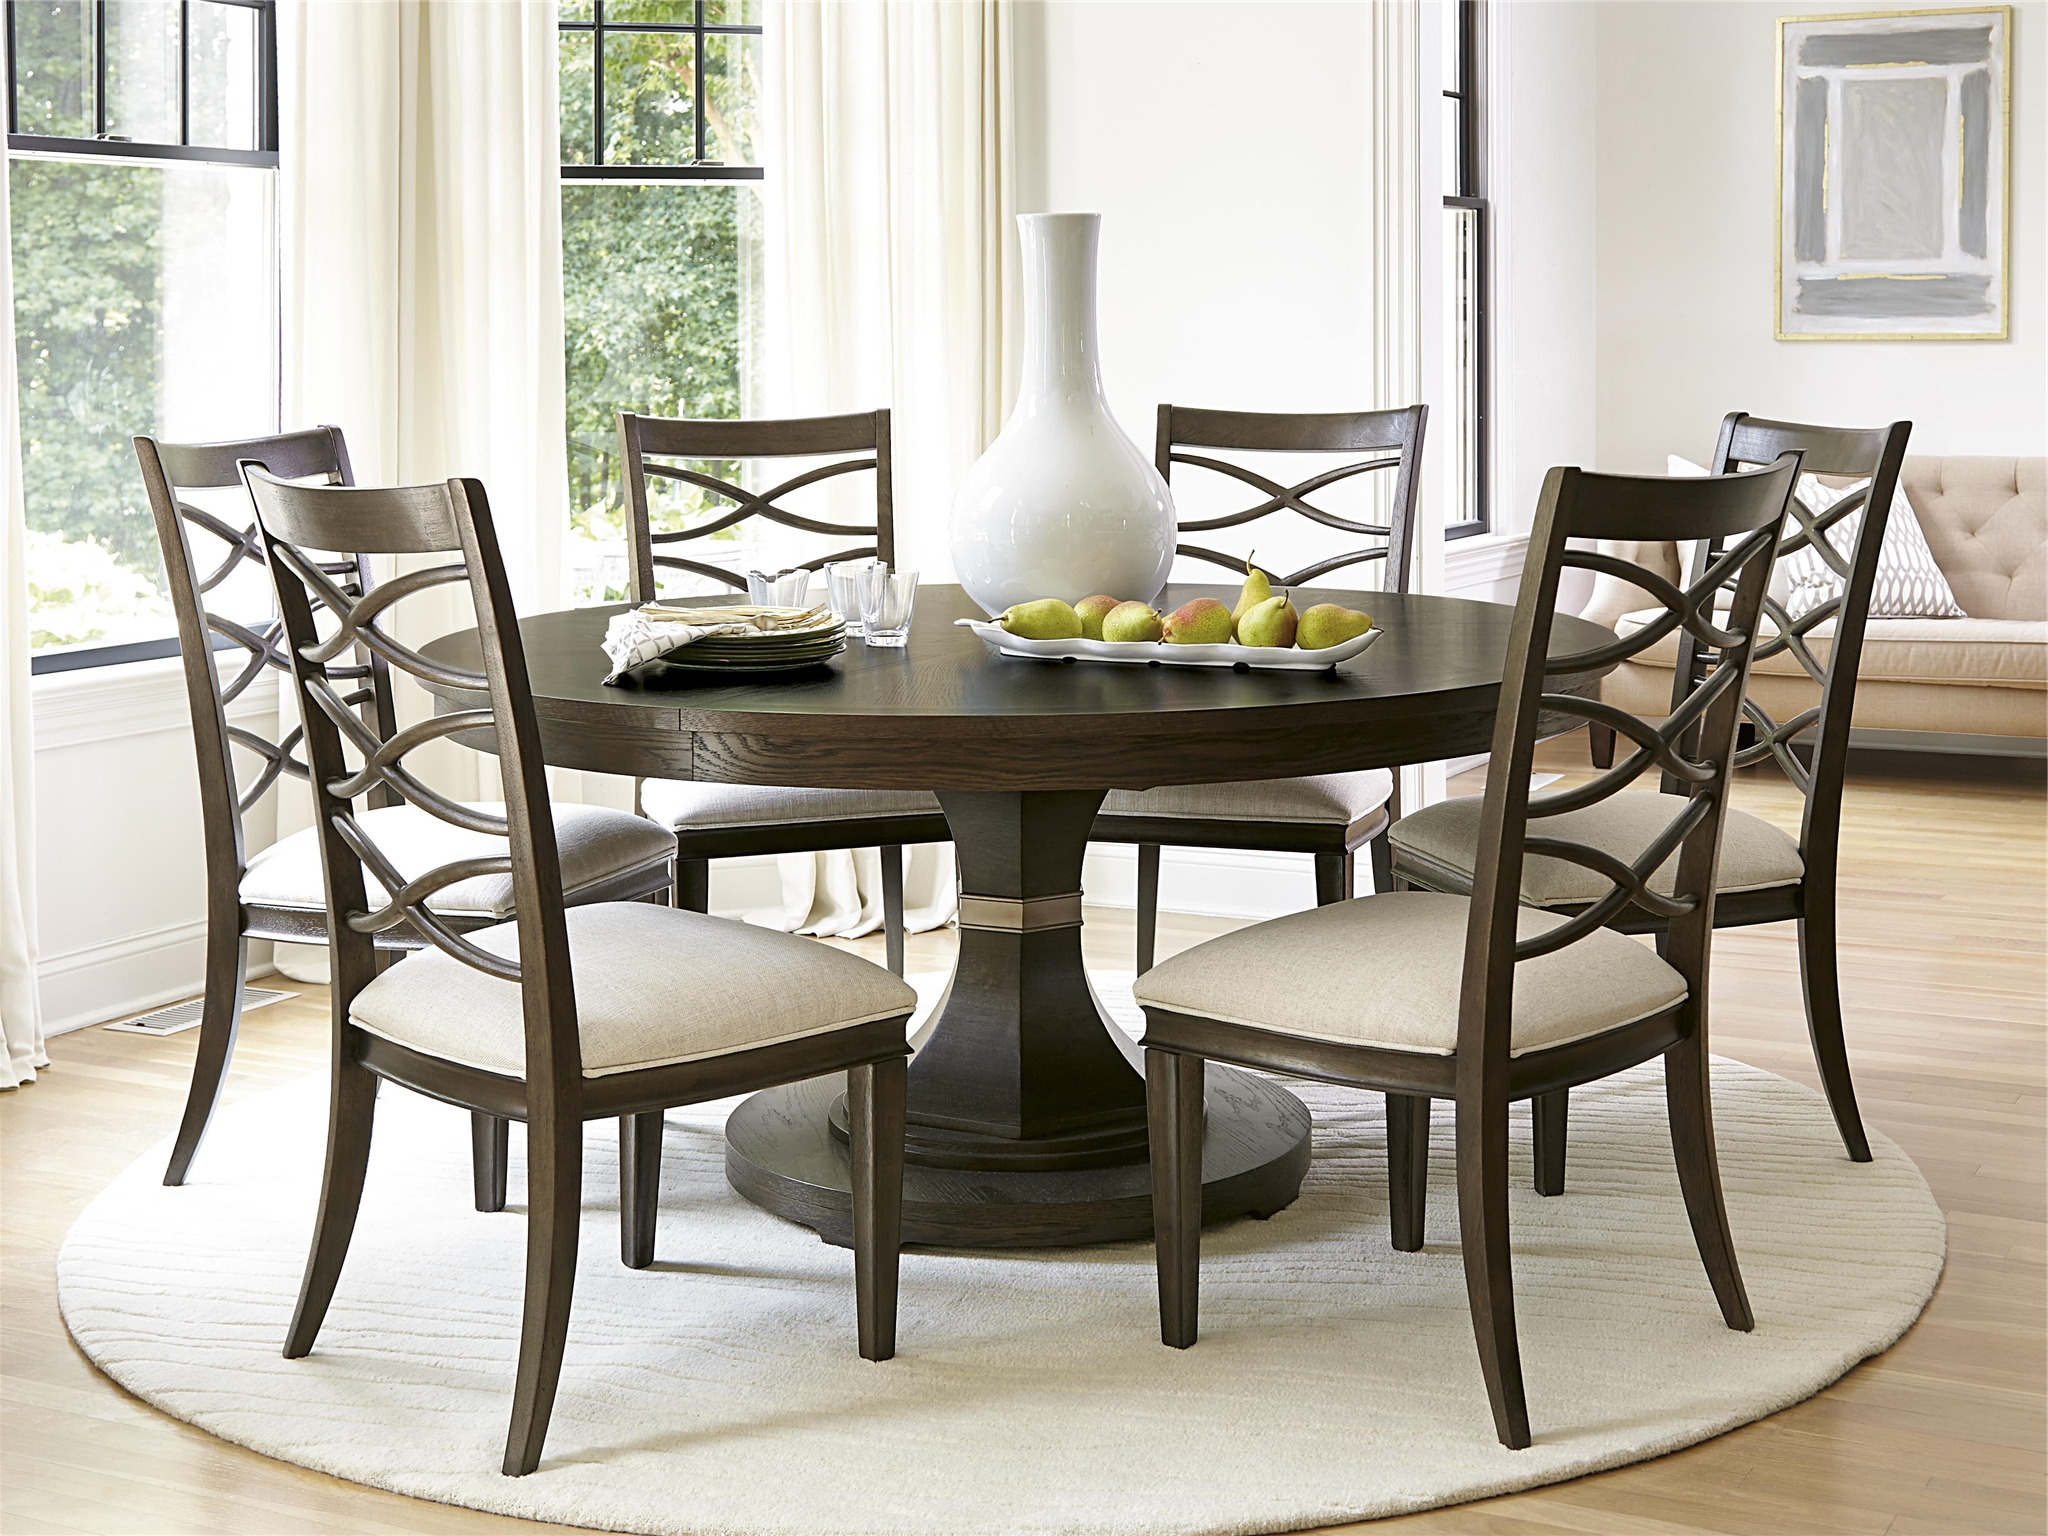 Grady 5 Piece Round Dining Sets Throughout Current Brilliant Ideas Of Round Dining Room Table With Grady Round Dining (View 8 of 25)